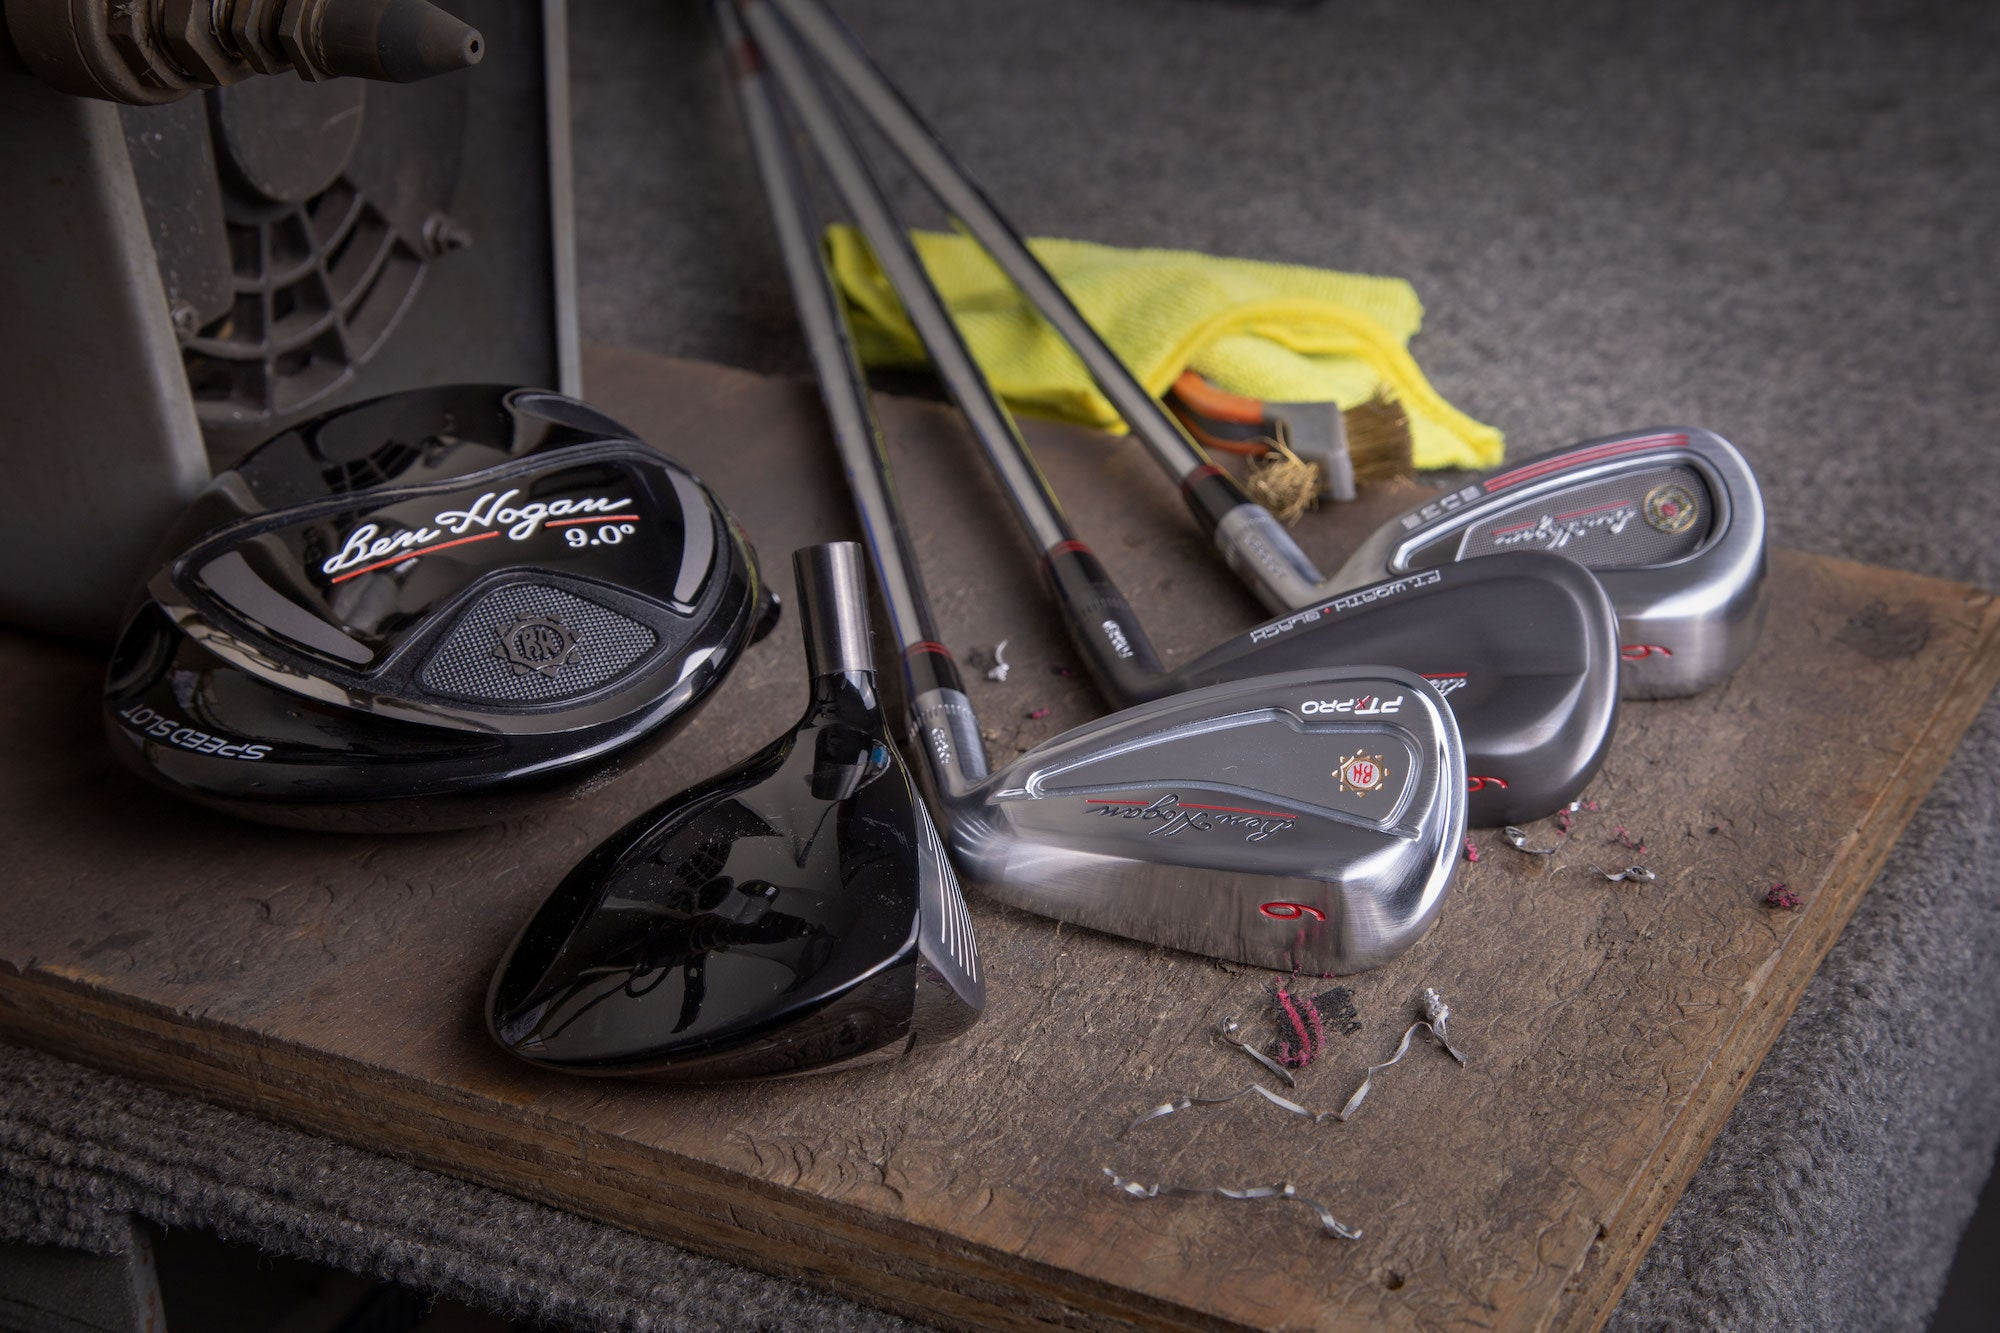 5db37cc921e ... irons that not only feel great, but provide forgiveness and playability  to meet the user's demands, I've finally found my gamers in the Ft. Worth  Black.